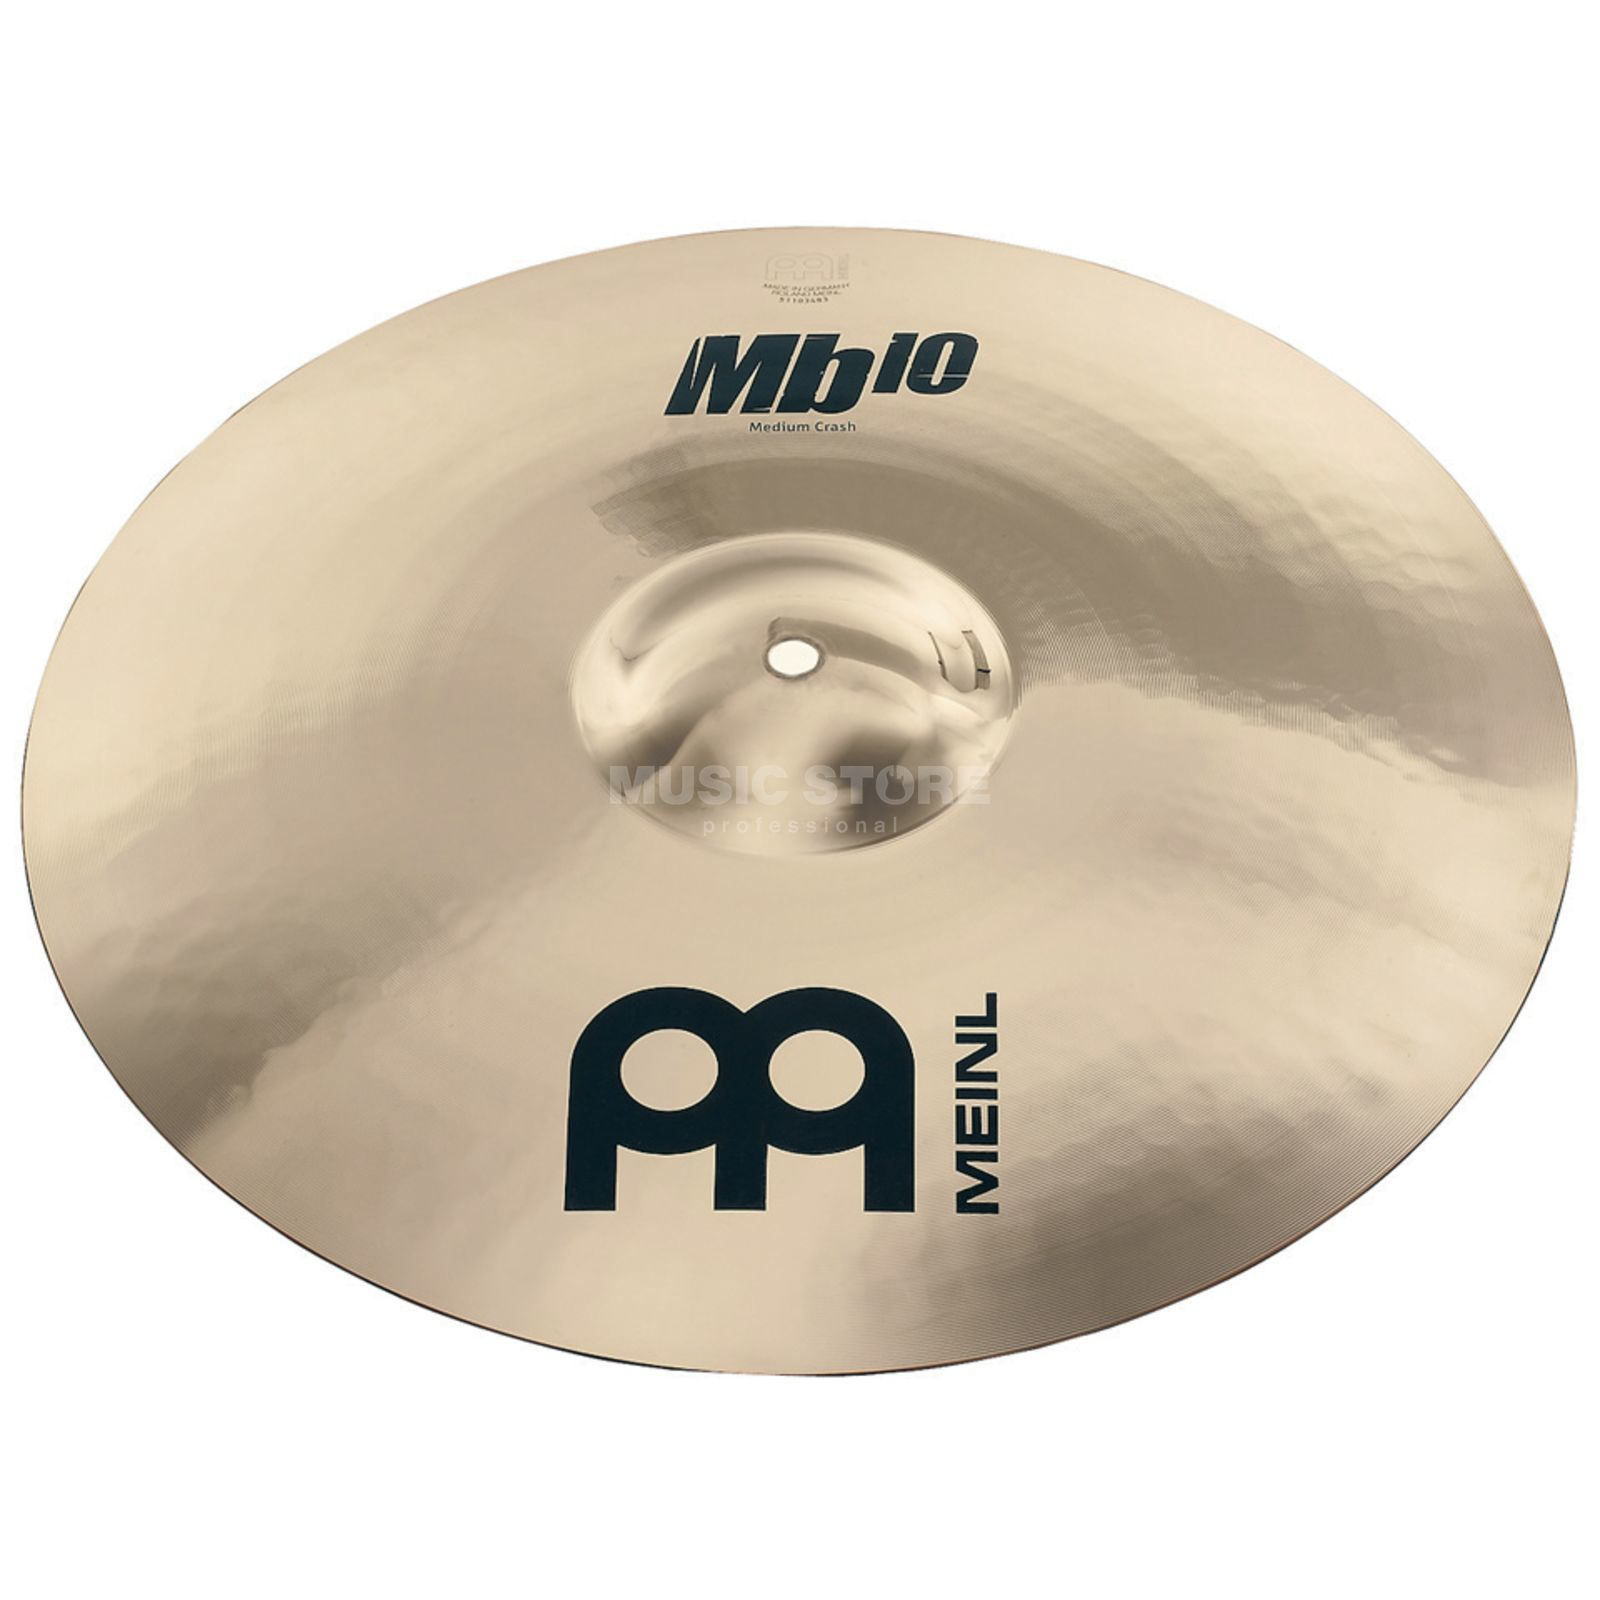 "Meinl MB10 Medium Crash 14"" MB10-14MC-B, Brilliant Finish Produktbild"